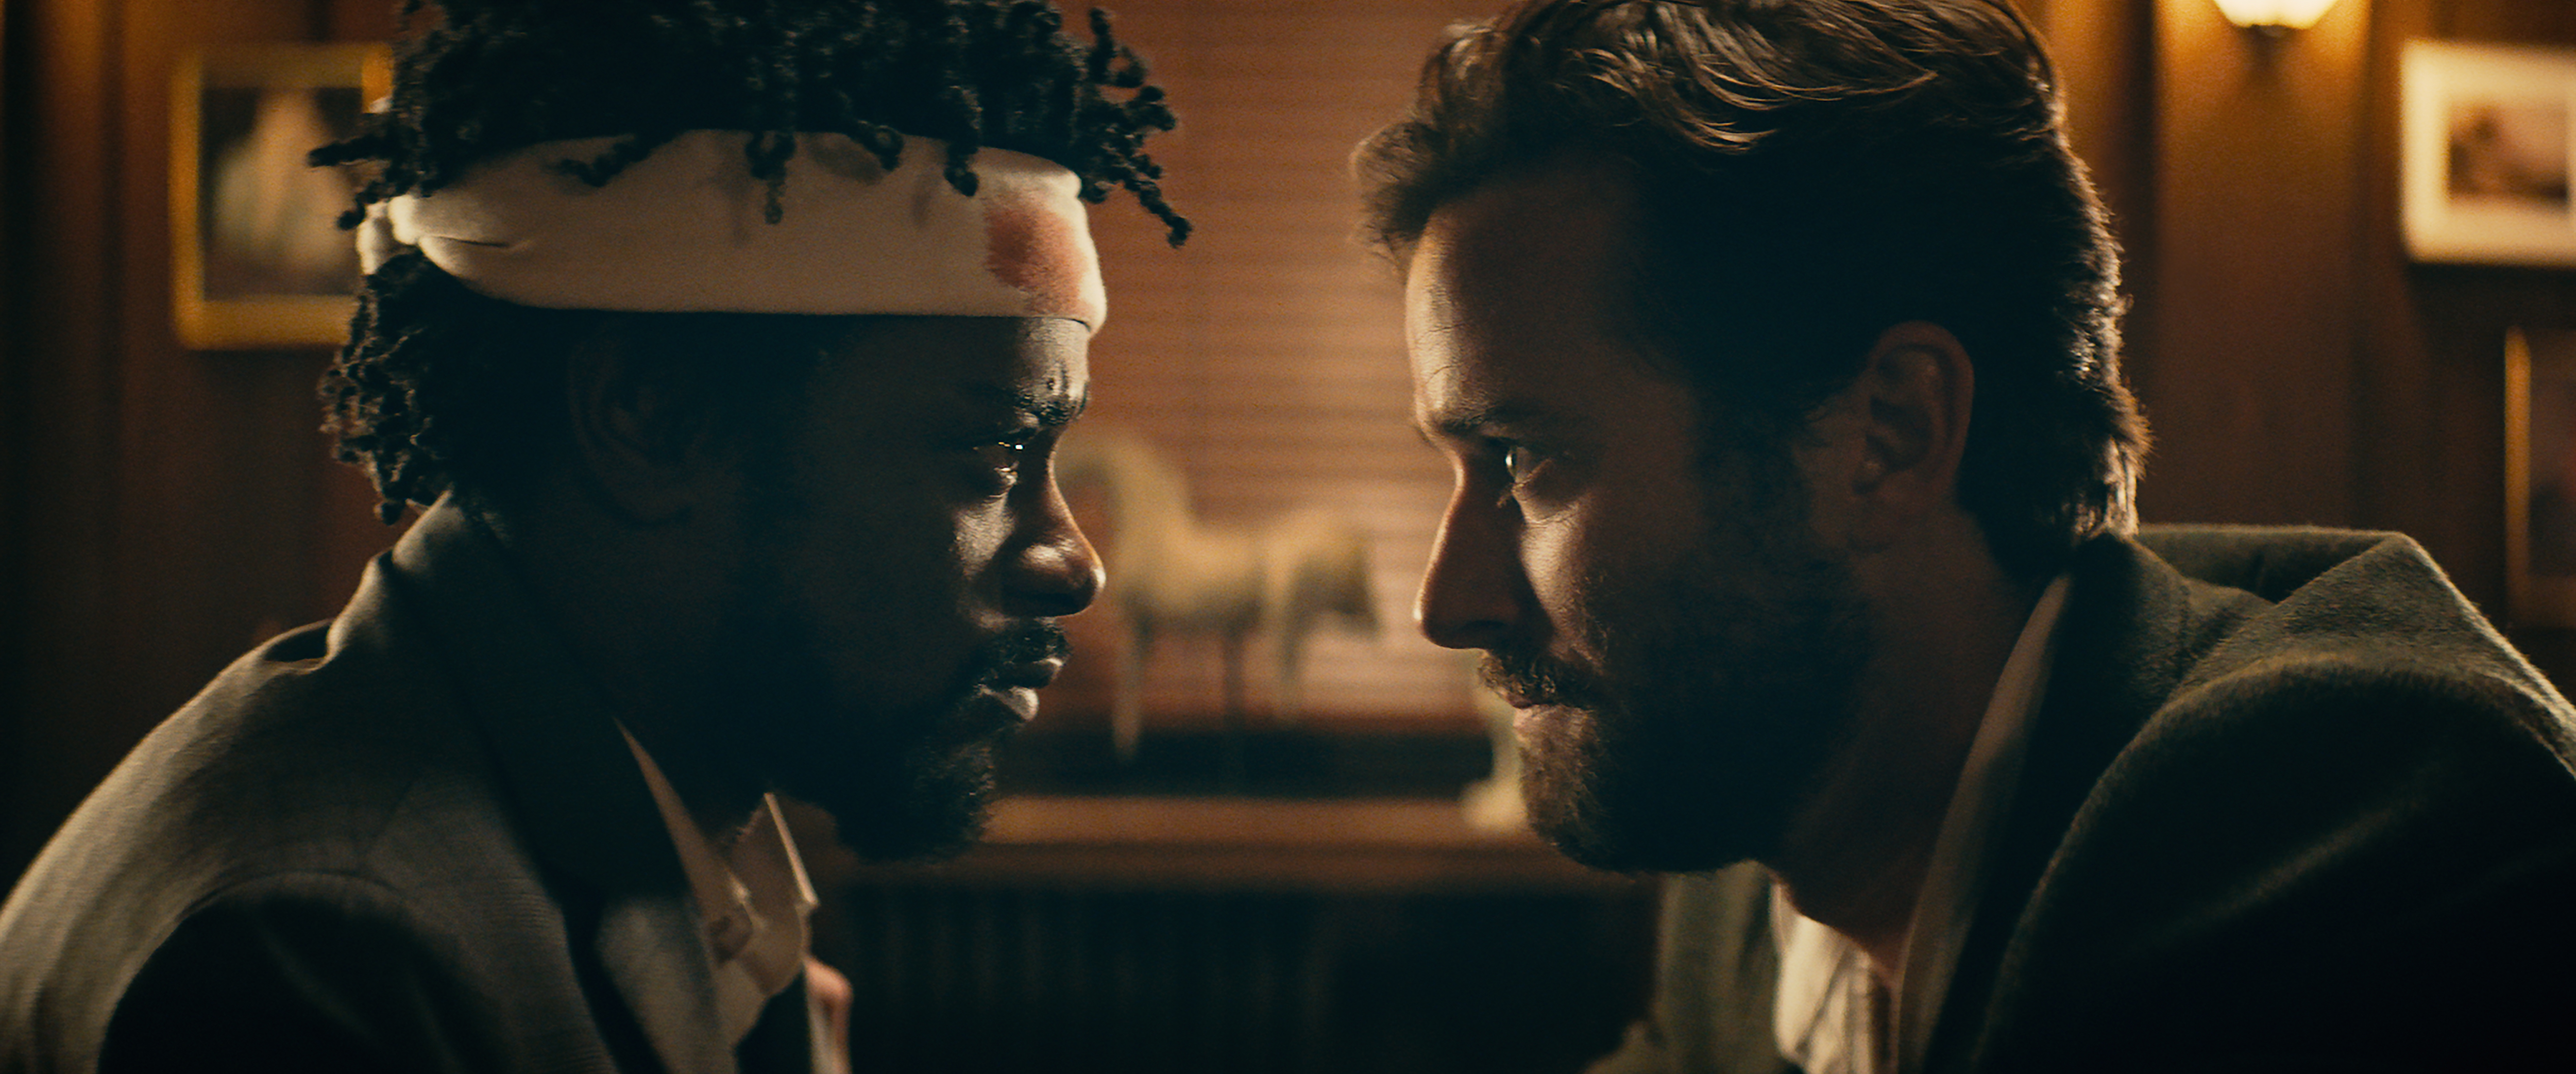 """(Annapurna Pictures via Associated Press) Lakeith Stanfield, left, and Armie Hammer in a scene from """"Sorry to Bother You."""""""